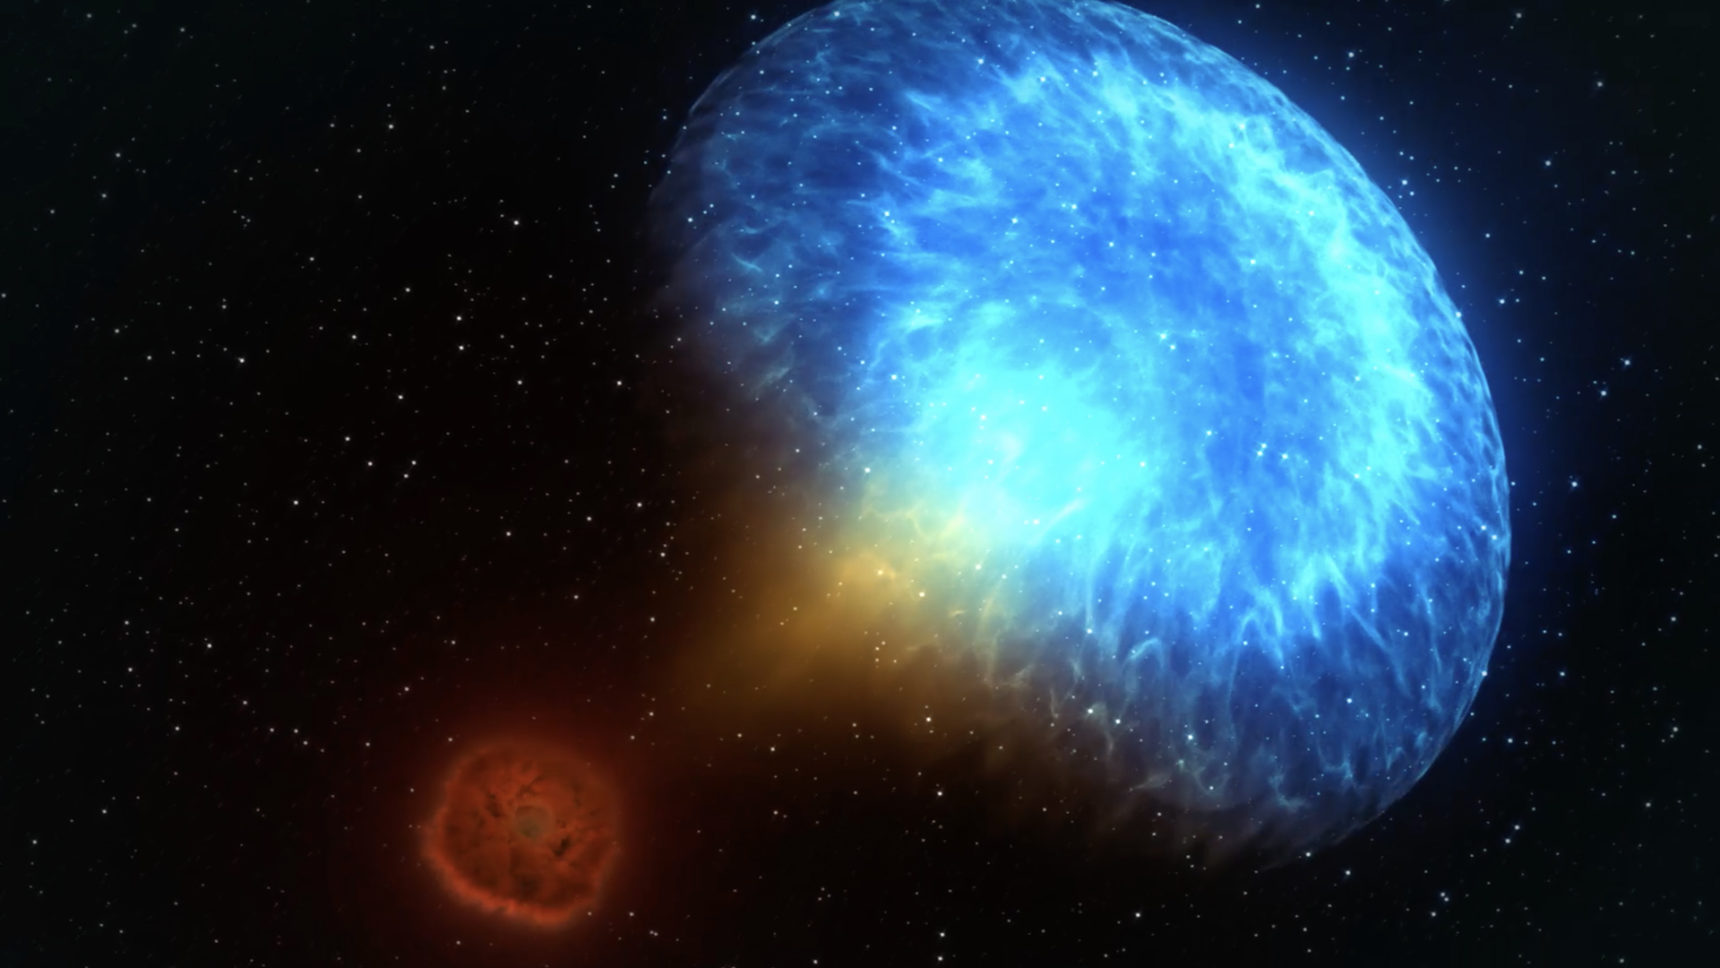 Two neutron stars collide - and the explosion stuns astronomers